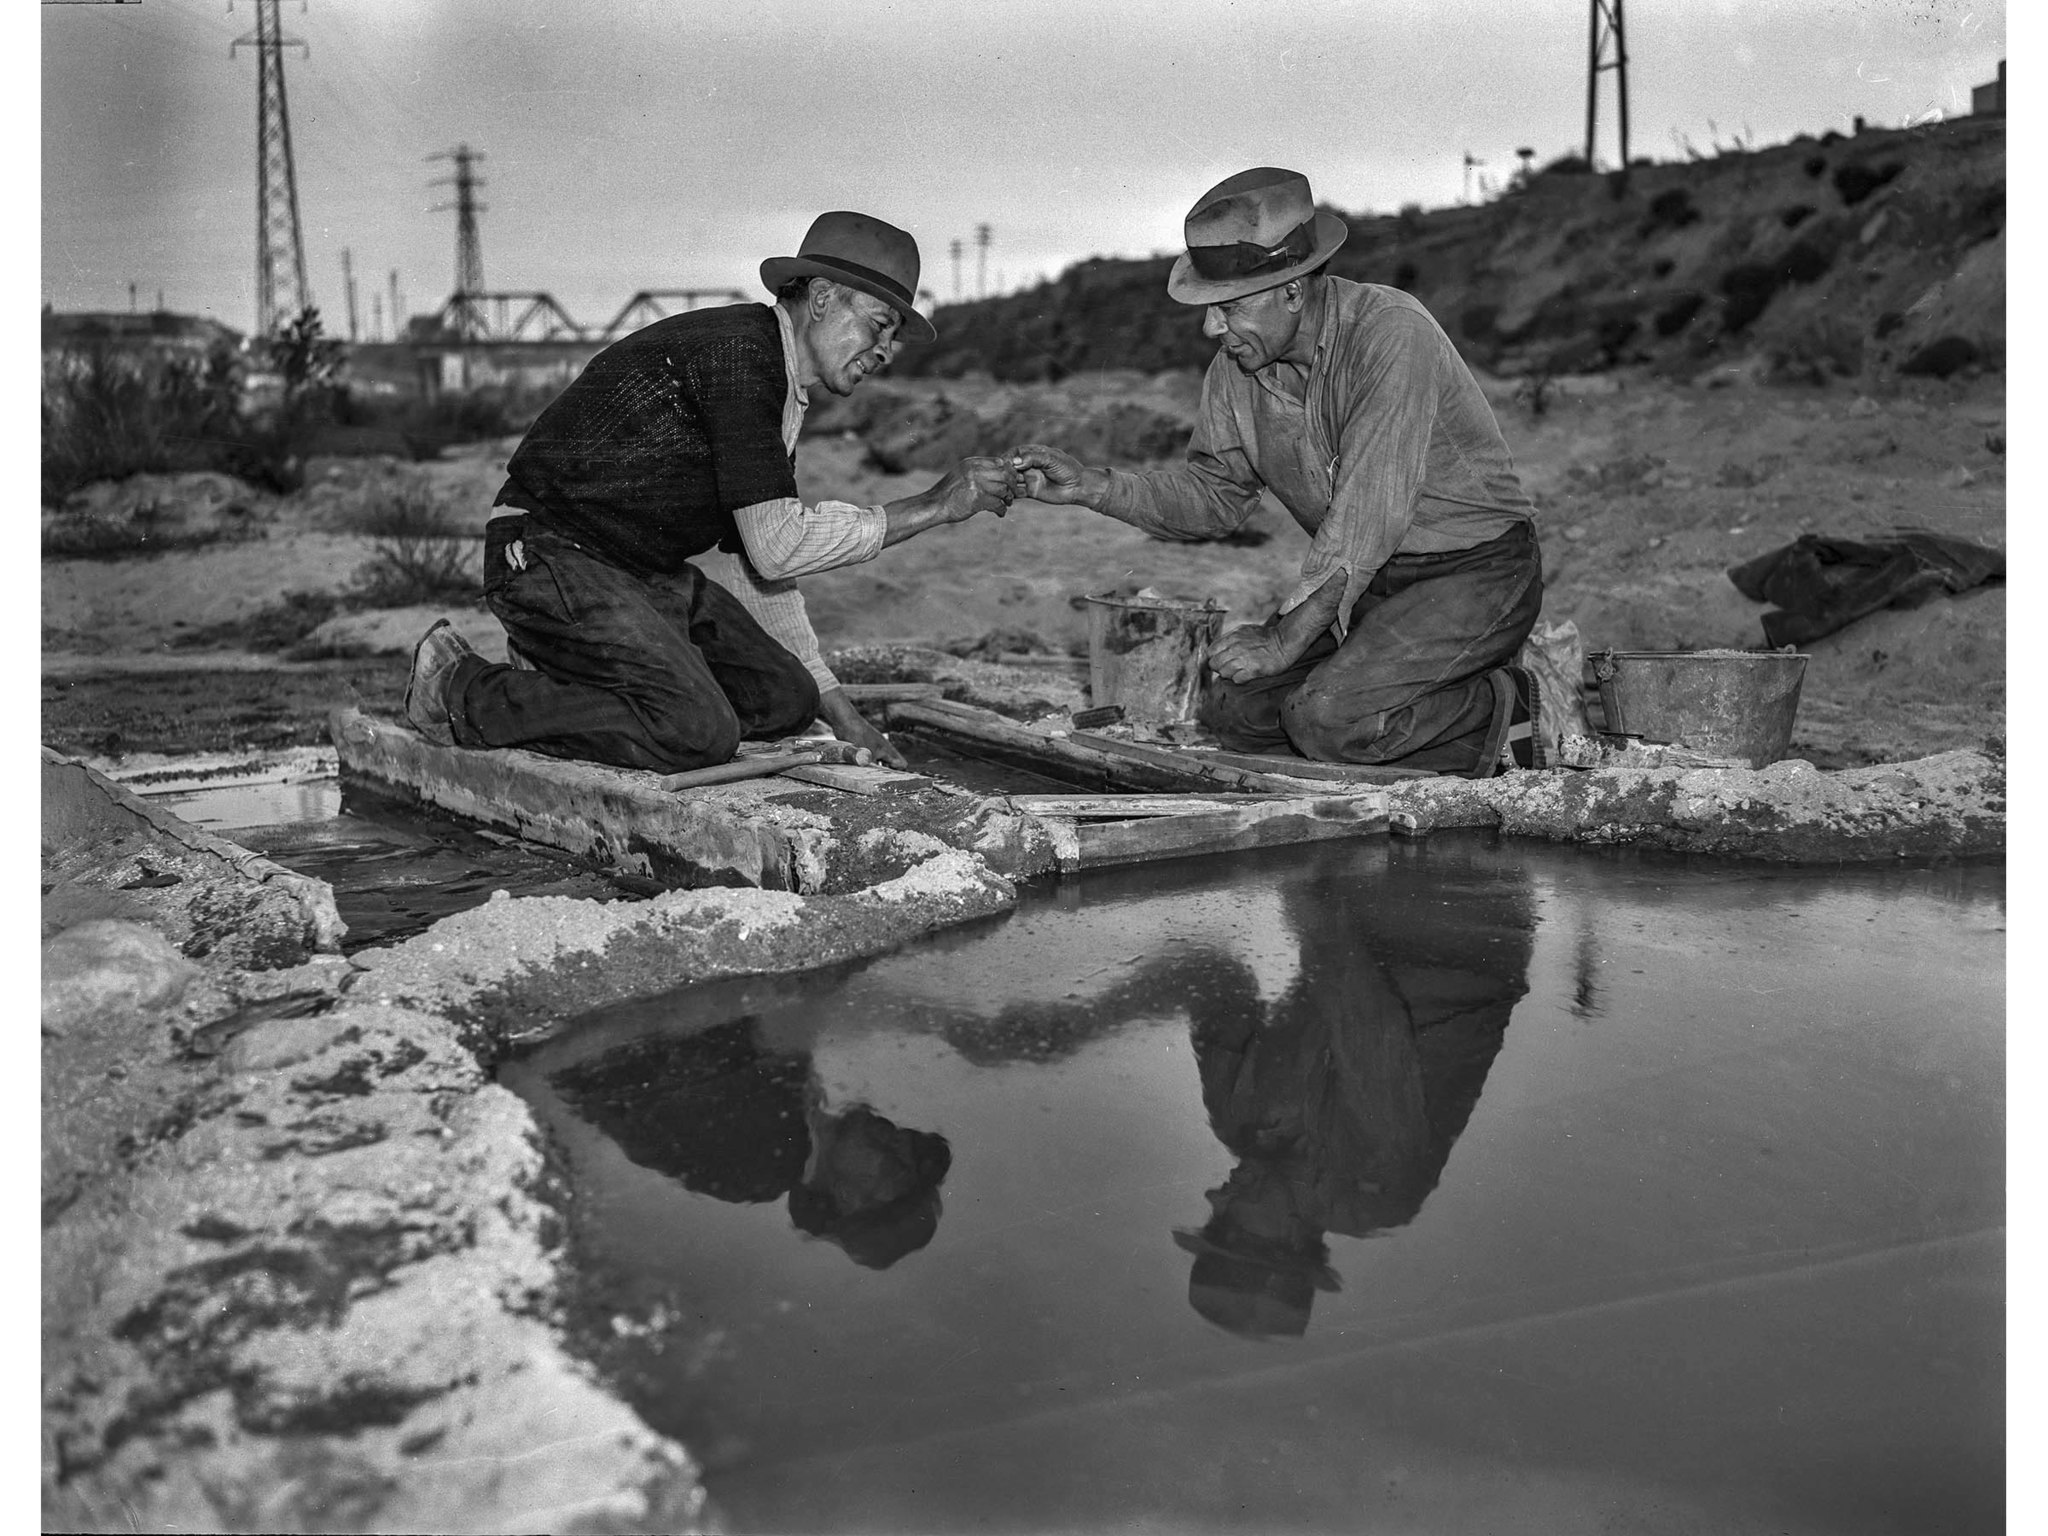 Dec. 11, 1938: Joe Parra, left, and E. Rea examine a gold nugget found in sand in Los Angeles River.